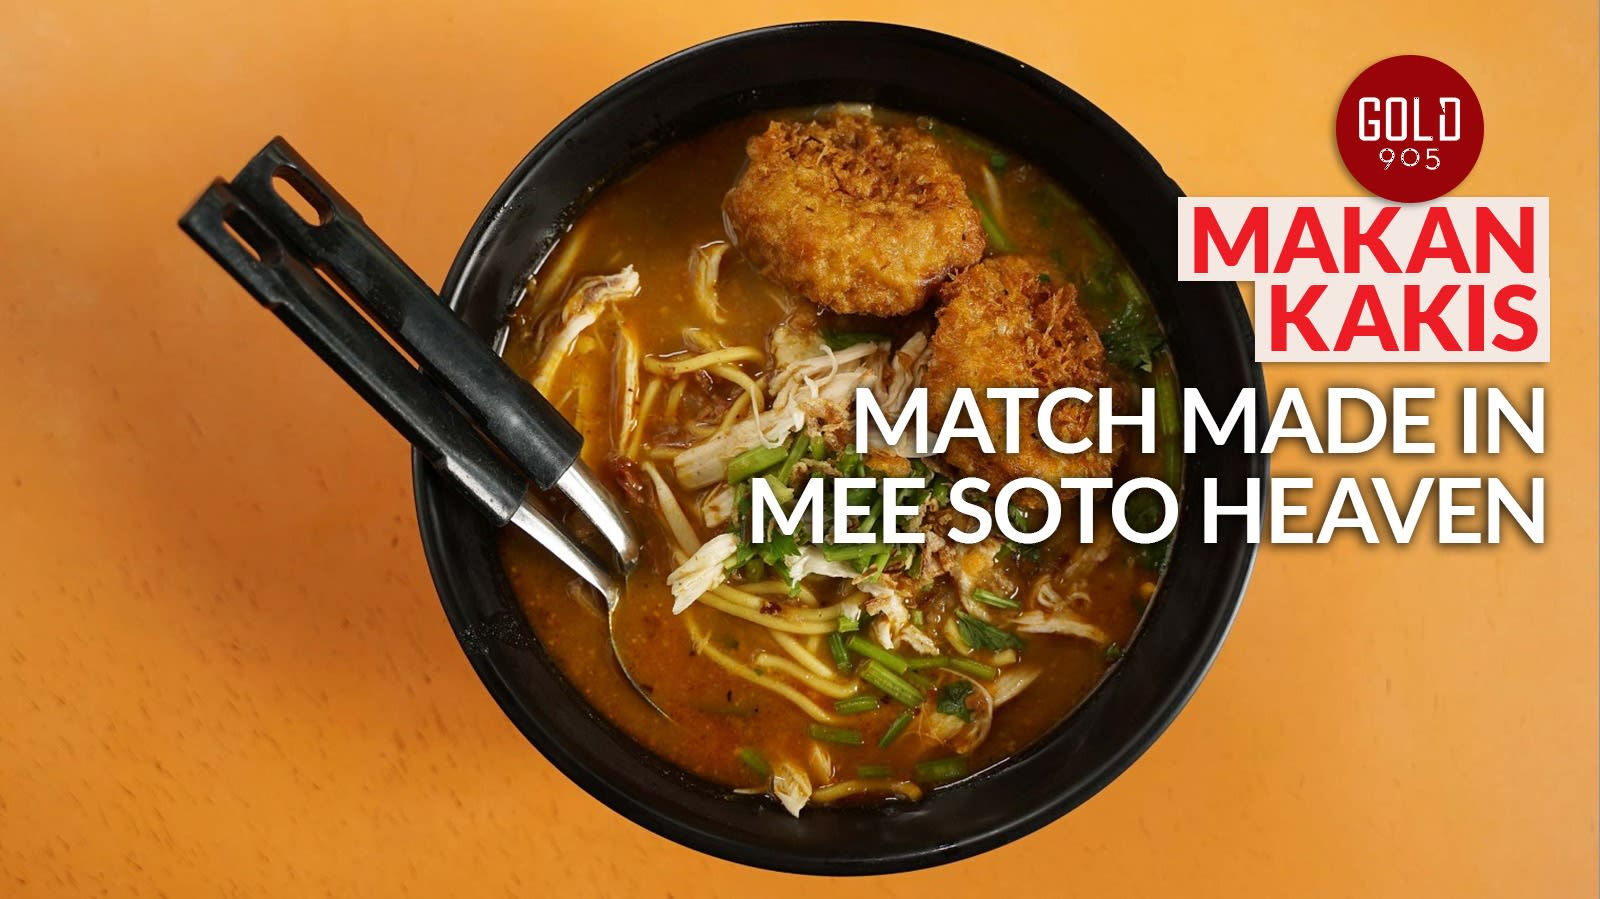 Makan Kakis: Sweet, spicy mee soto in Ang Mo Kio | CNA Lifestyle